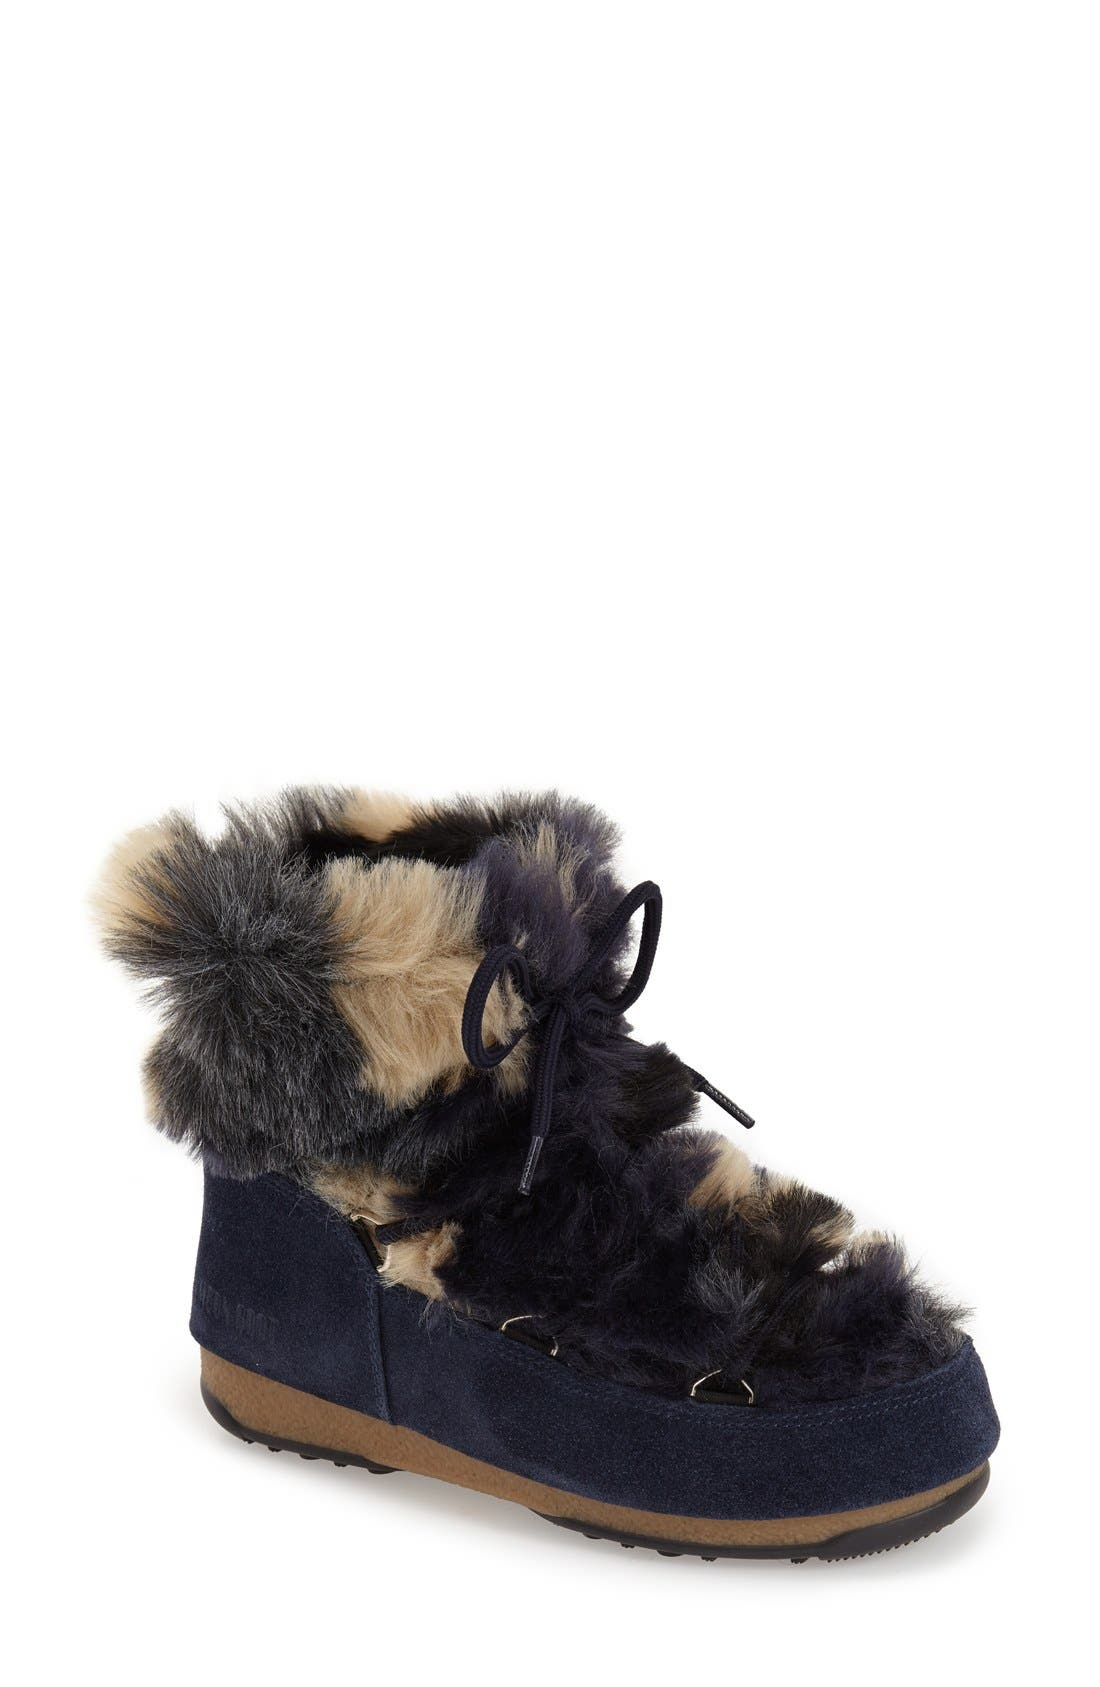 Alternate Image 1 Selected - Tecnica® Camo Flip Paillette Water Resistant Insulated Moon Boot® with Faux Fur Lining (Women)